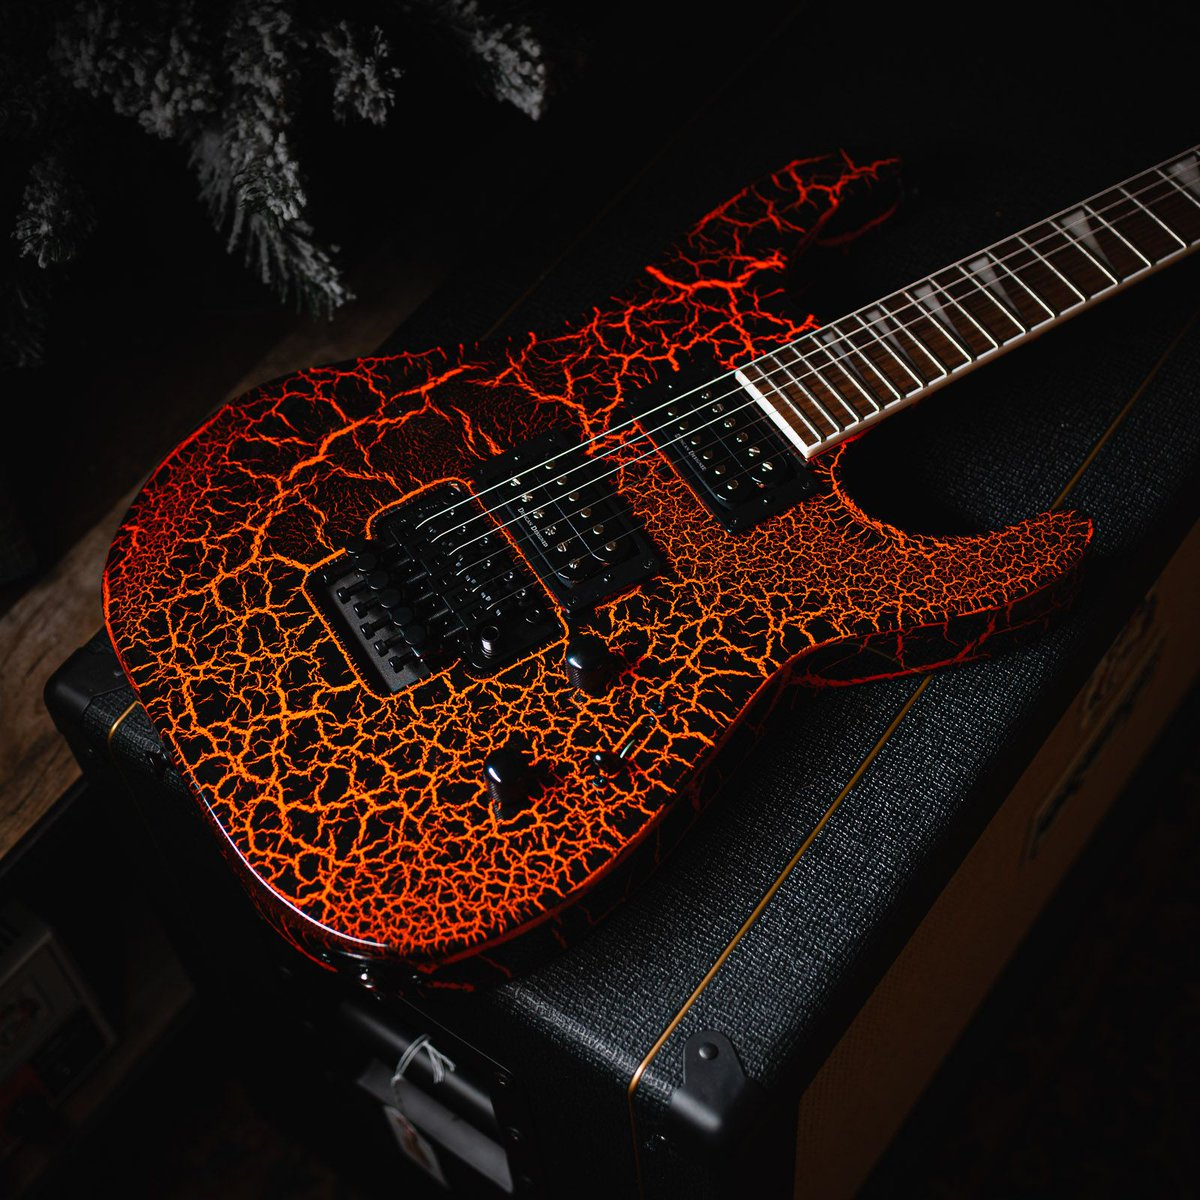 The guitar is lava! http://bit.ly/30w04wa #chicagomusicexchange #jackson #xseries #soloist #slx #neonorangecrackle #gearwire #gearybusey #guitarspotter #guitarphotography #guitarsdaily #tonemob #knowyourtonepic.twitter.com/ko8rCNgjze